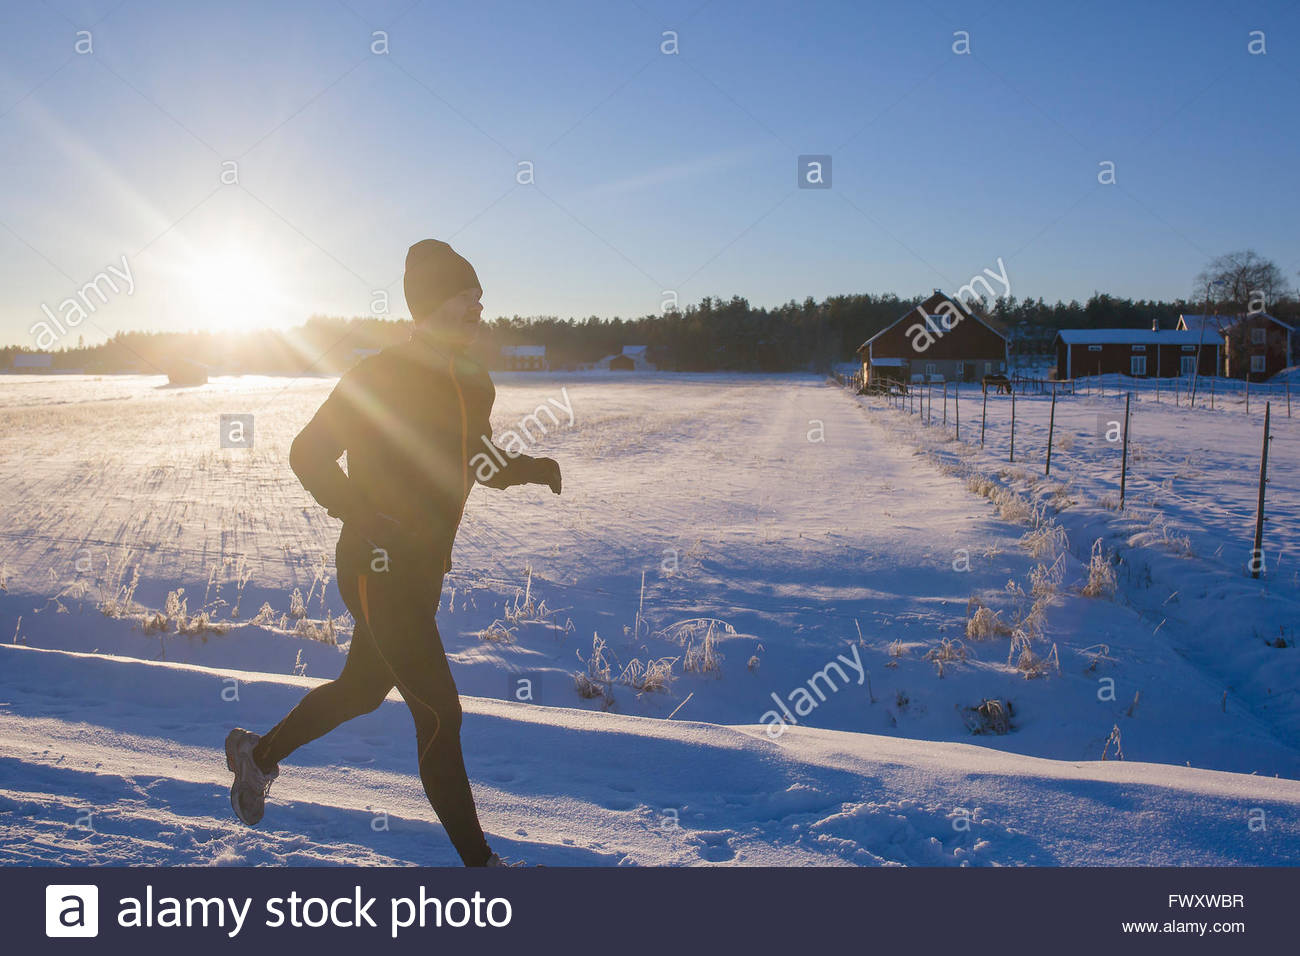 Sweden, Vasterbotten, Roback, Mid adult man running in winter - Stock Image